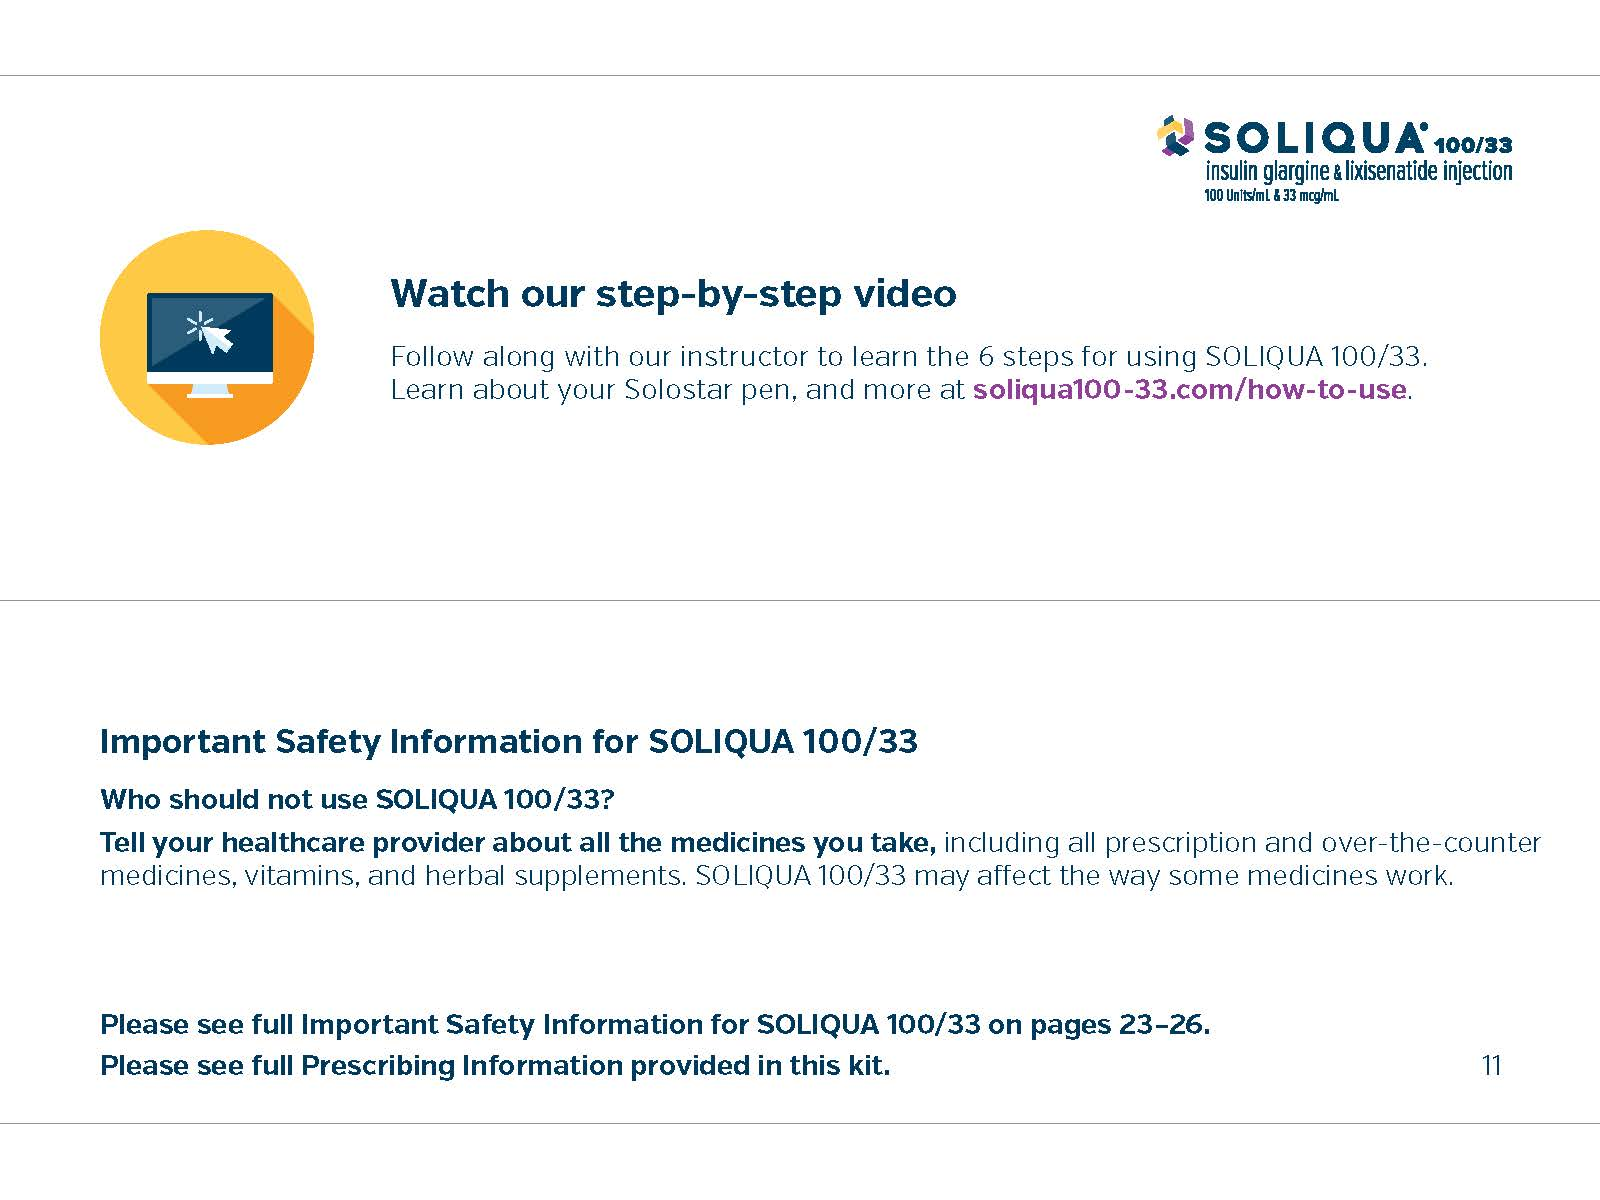 SAUS.SQA.17.04.1224_Starter_Kit_Core_Brochure_v24 copy 2_Page_11.jpg